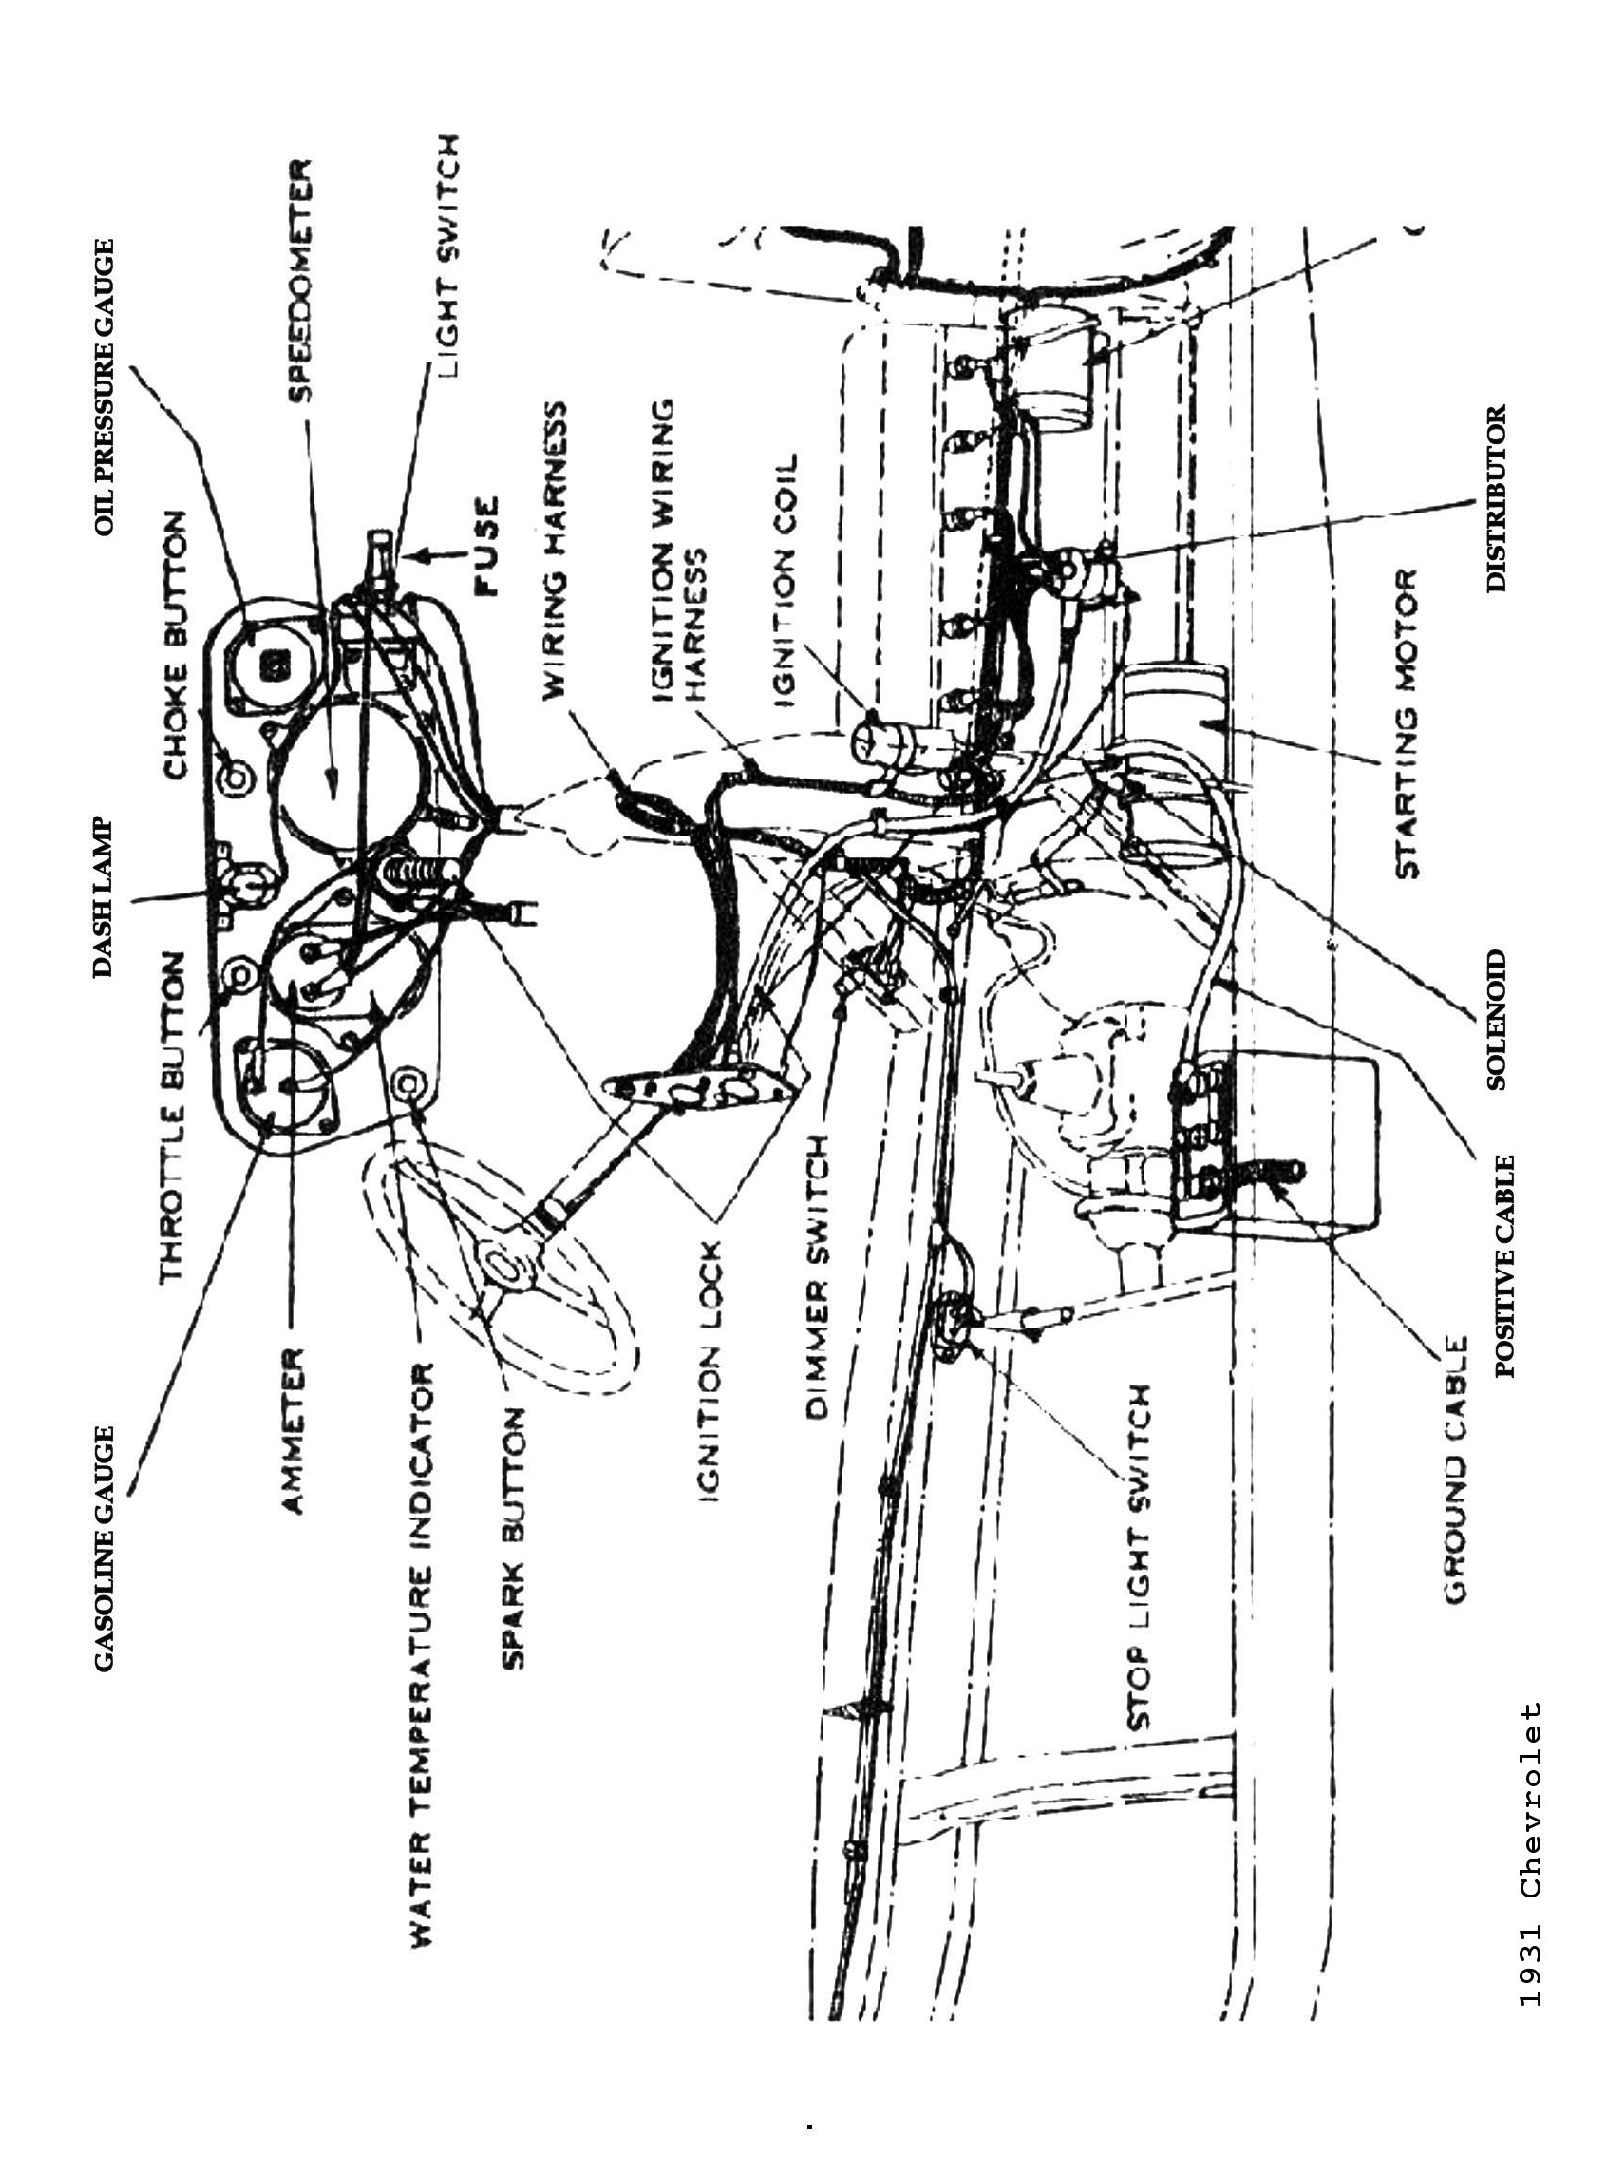 31harness chevy wiring diagrams wiring harness diagram at cita.asia